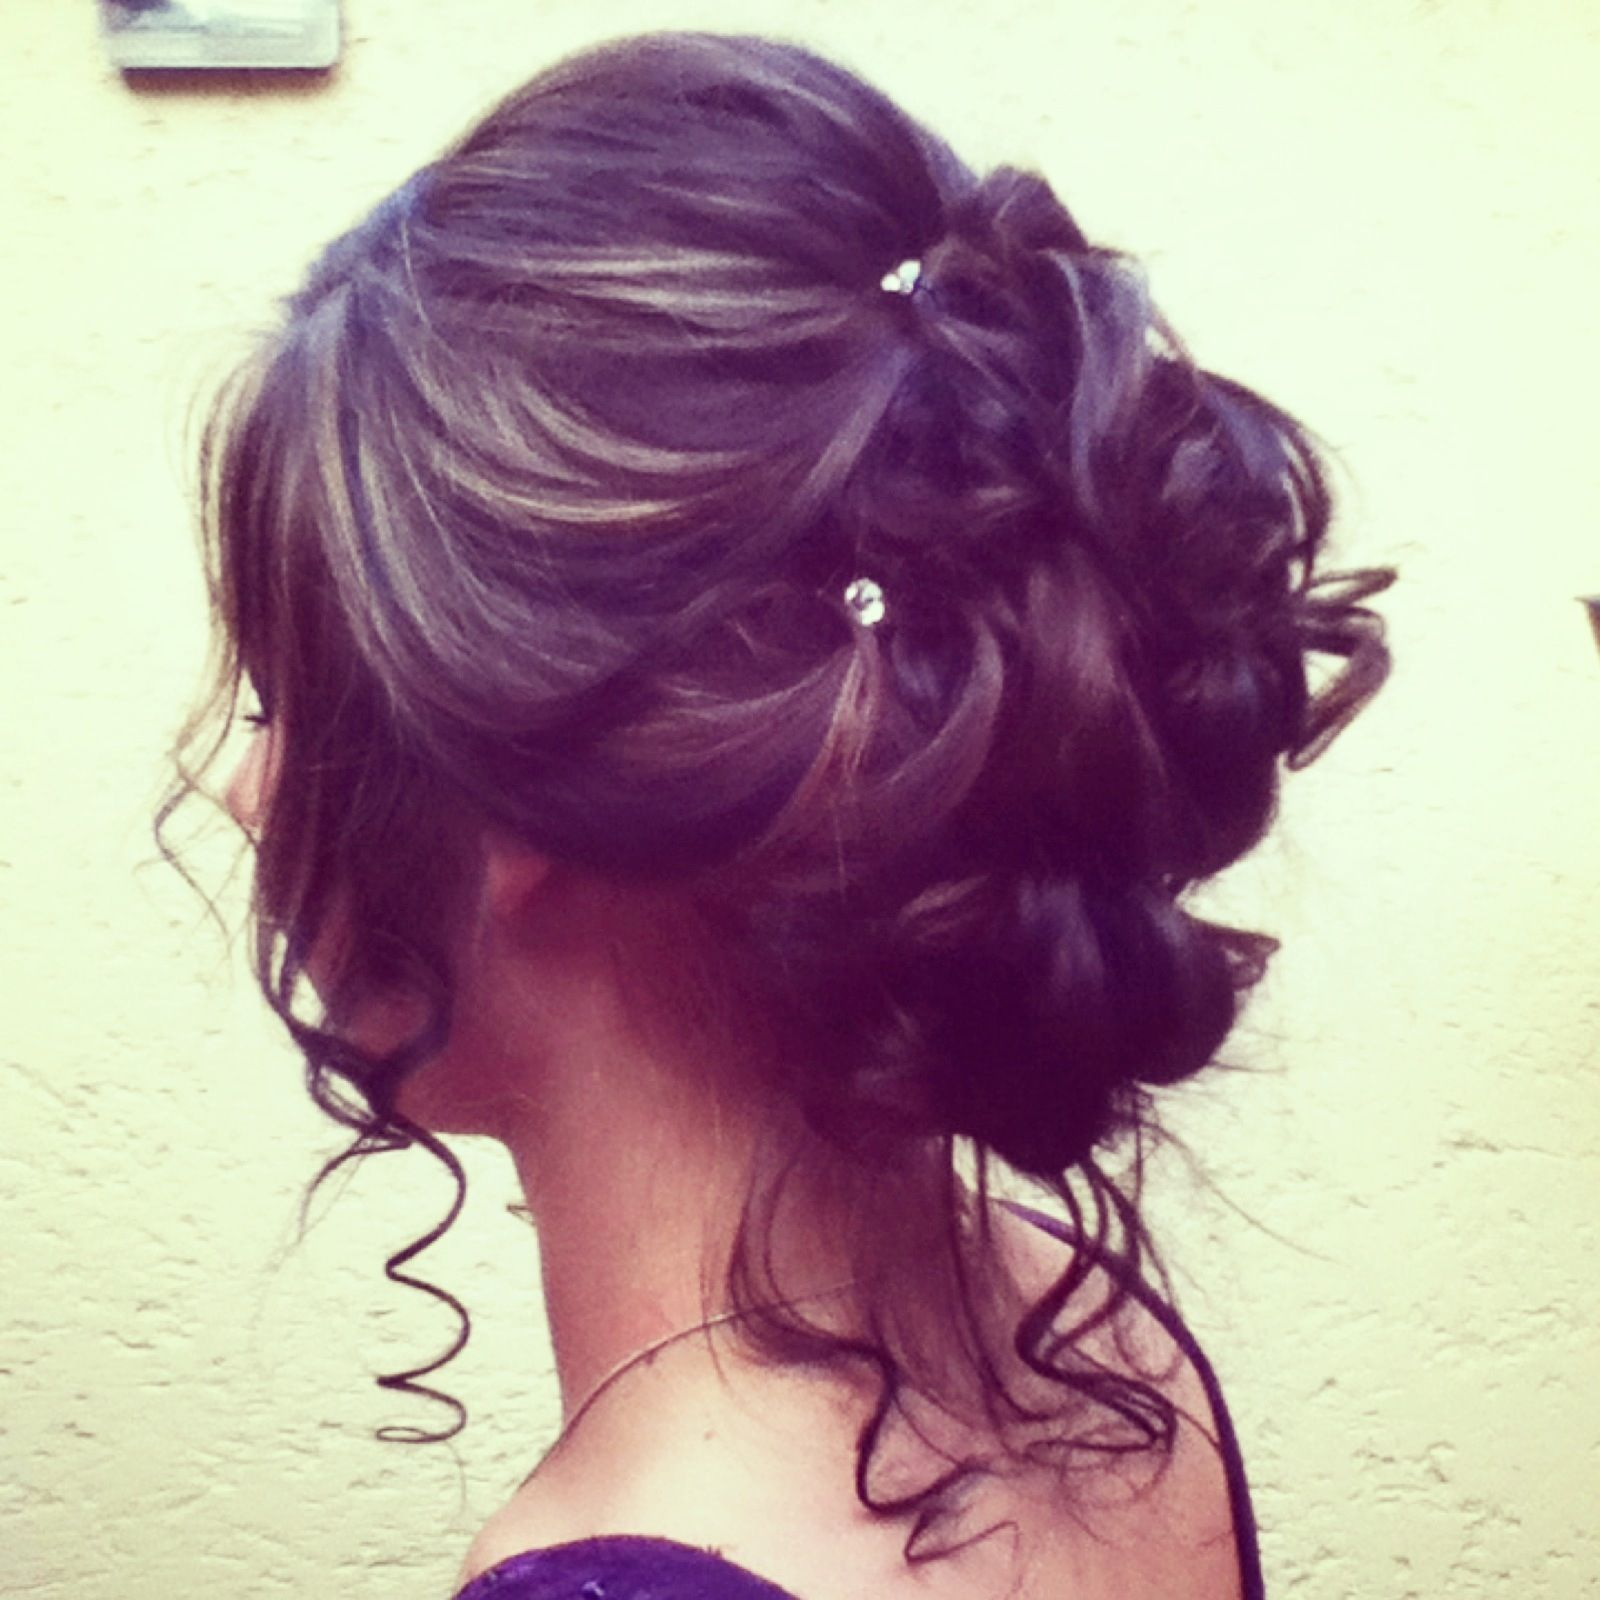 Hairstyles For Formal Dances 17 Fancy Prom Hairstyles For Girls Hair Beauty And Hairstyles